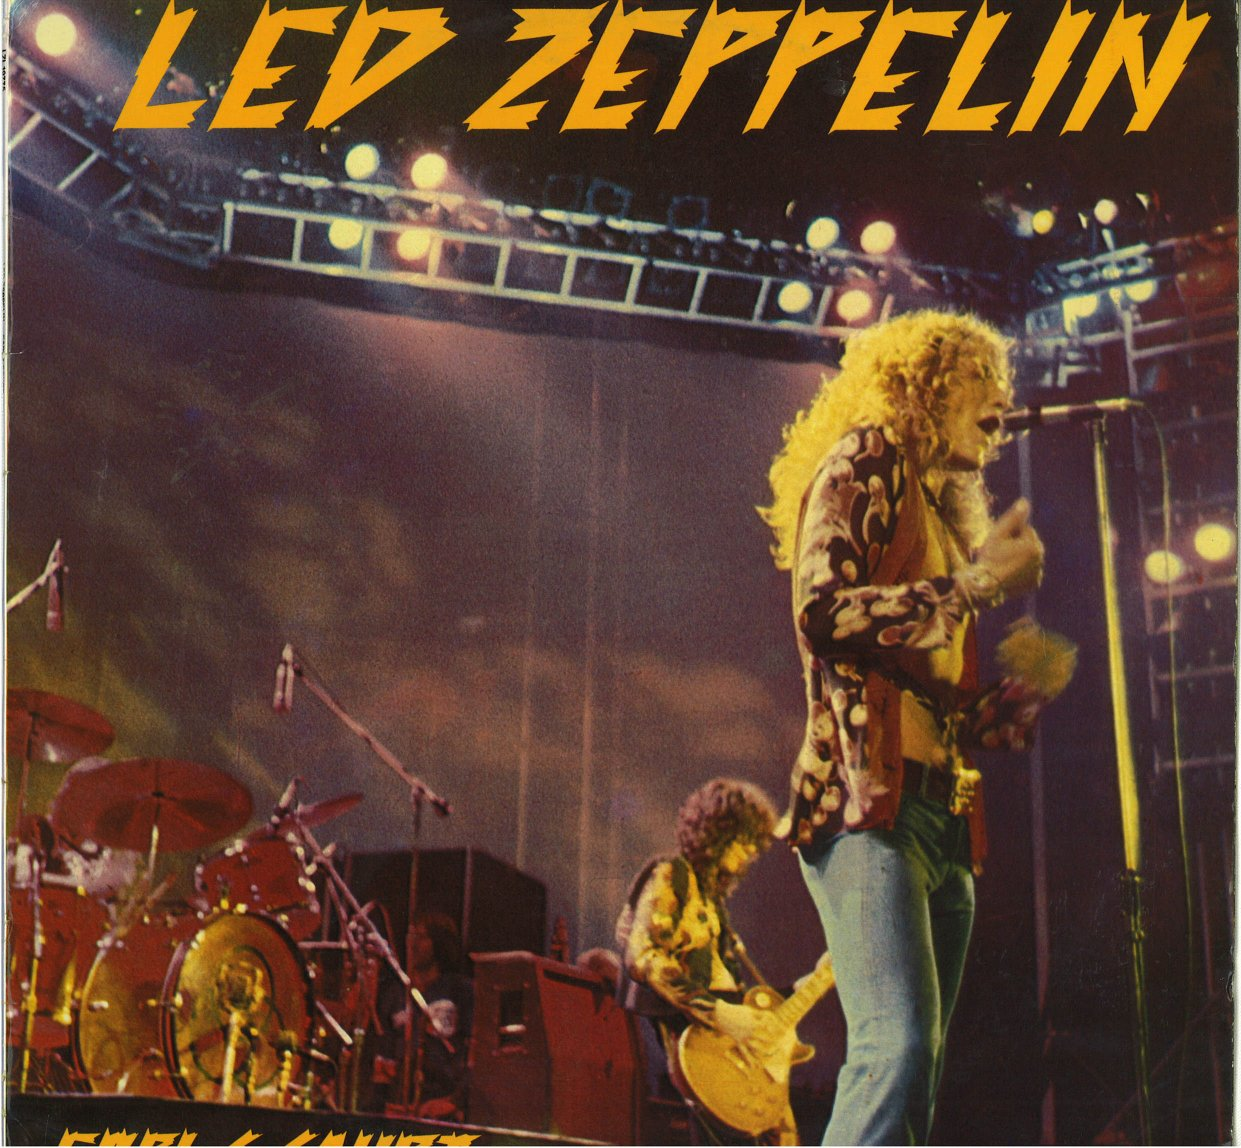 Led%20Zepplin%20Earls%20Court%201975%20front.jpg